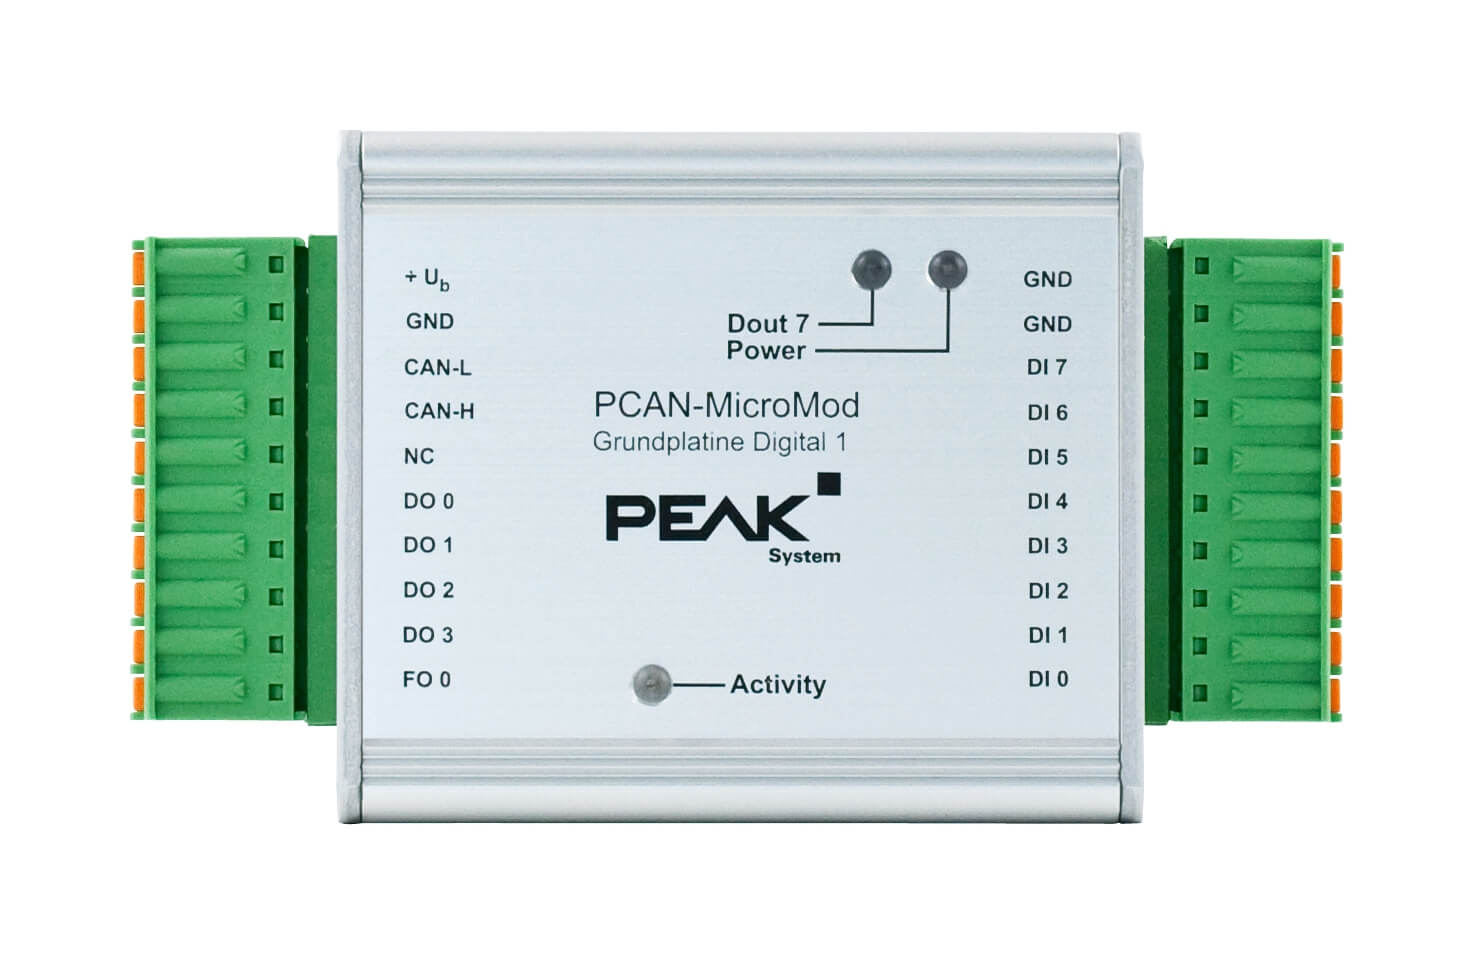 PCAN-MicroMod Digital 1